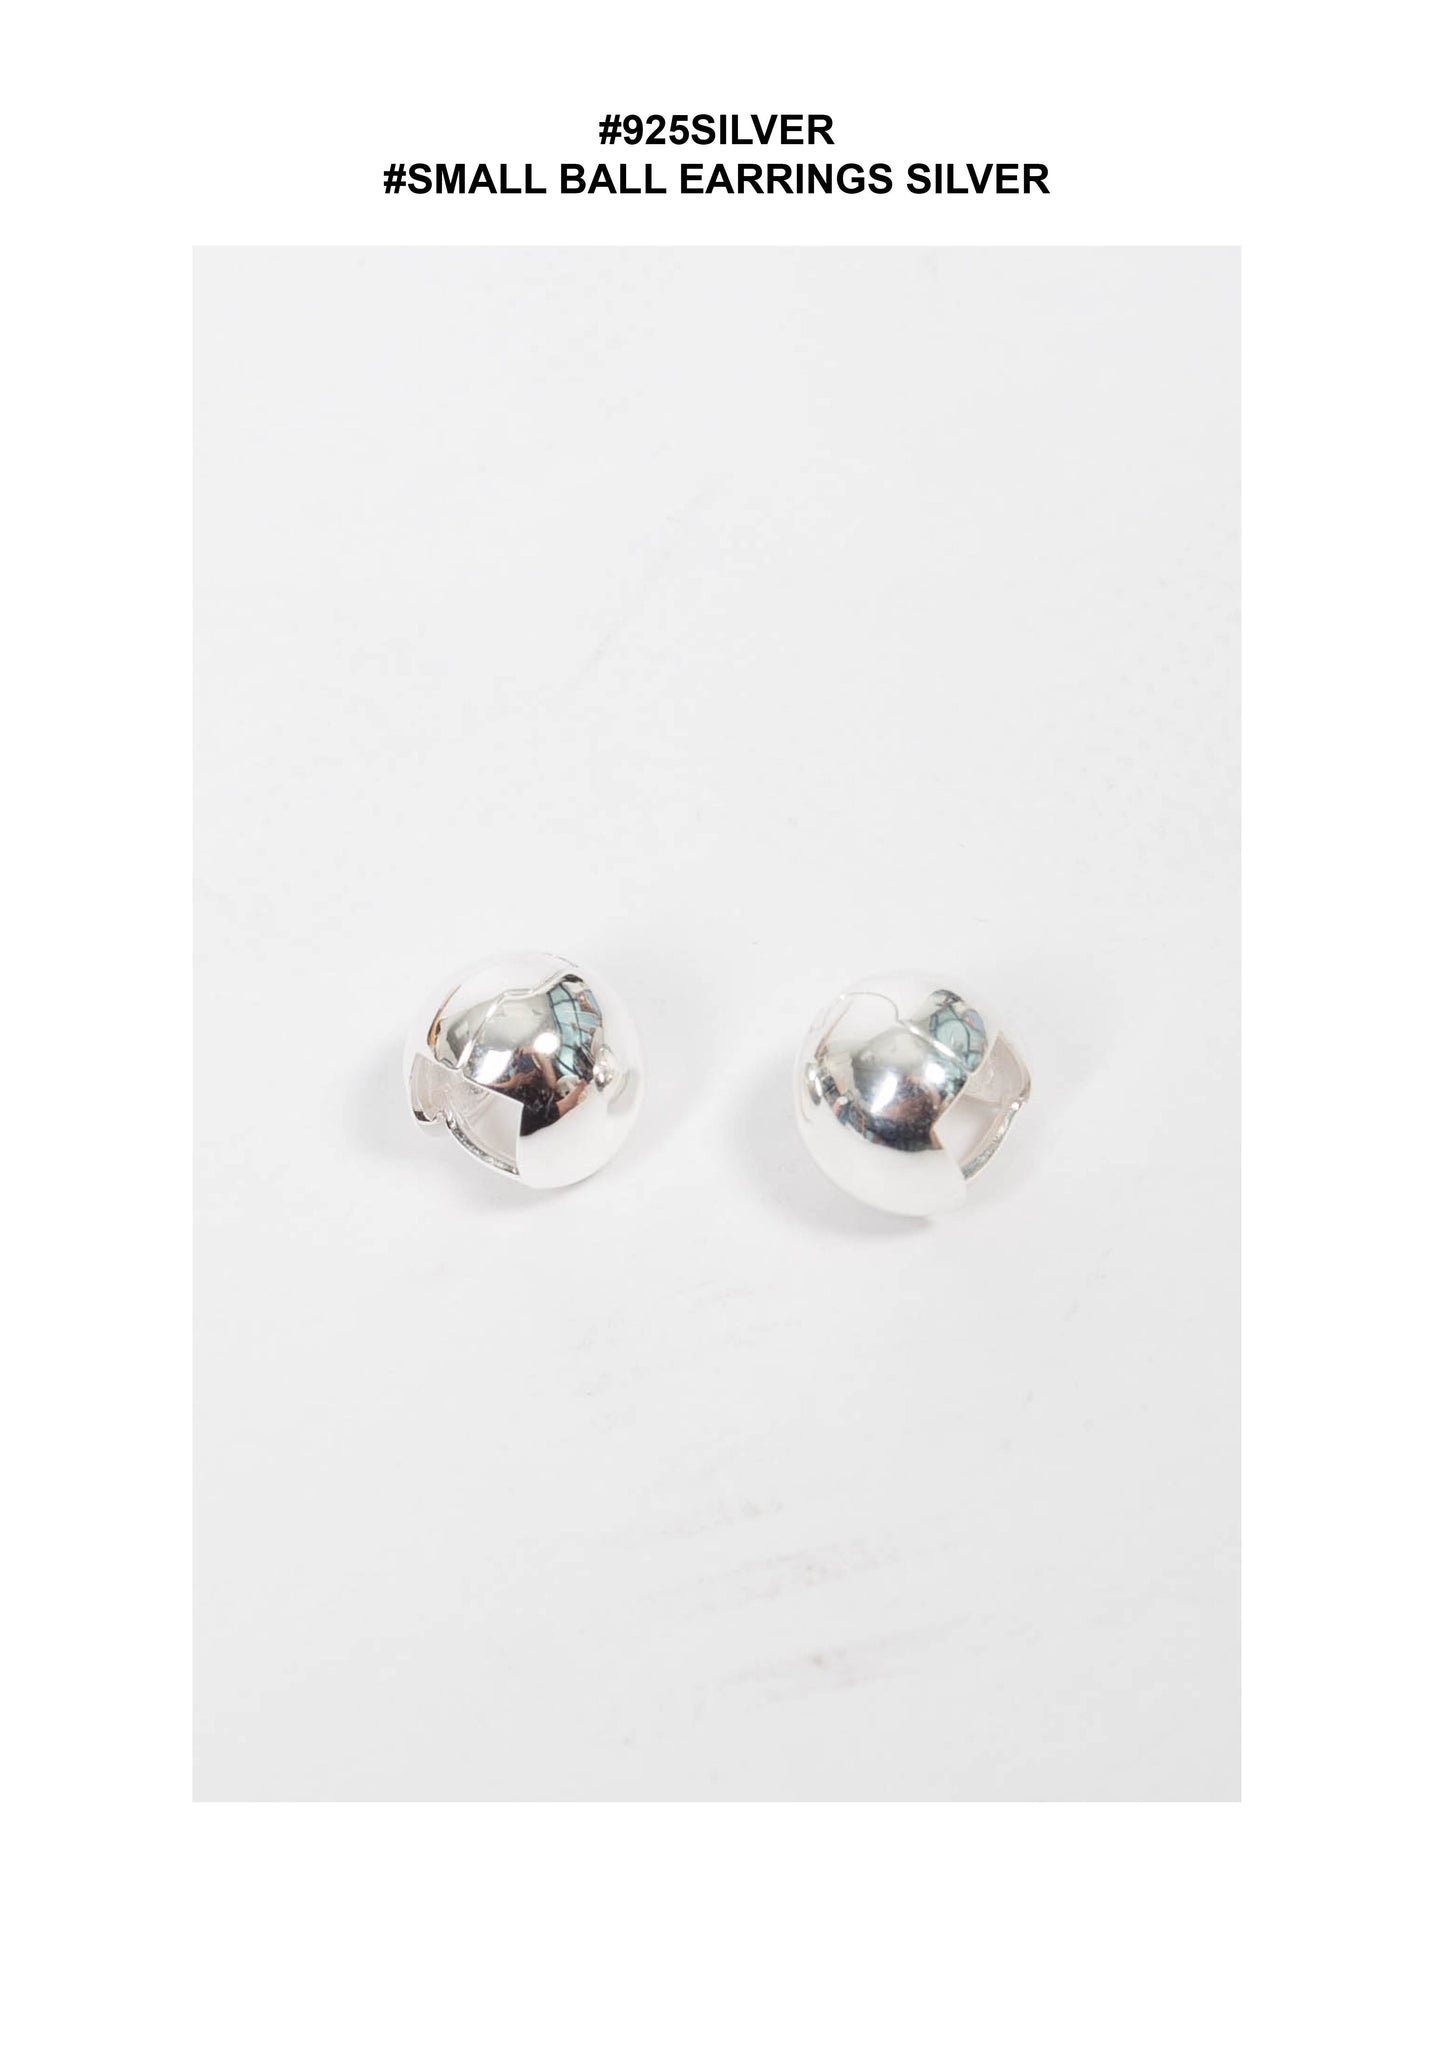 925 Silver Small Ball Earrings Silver